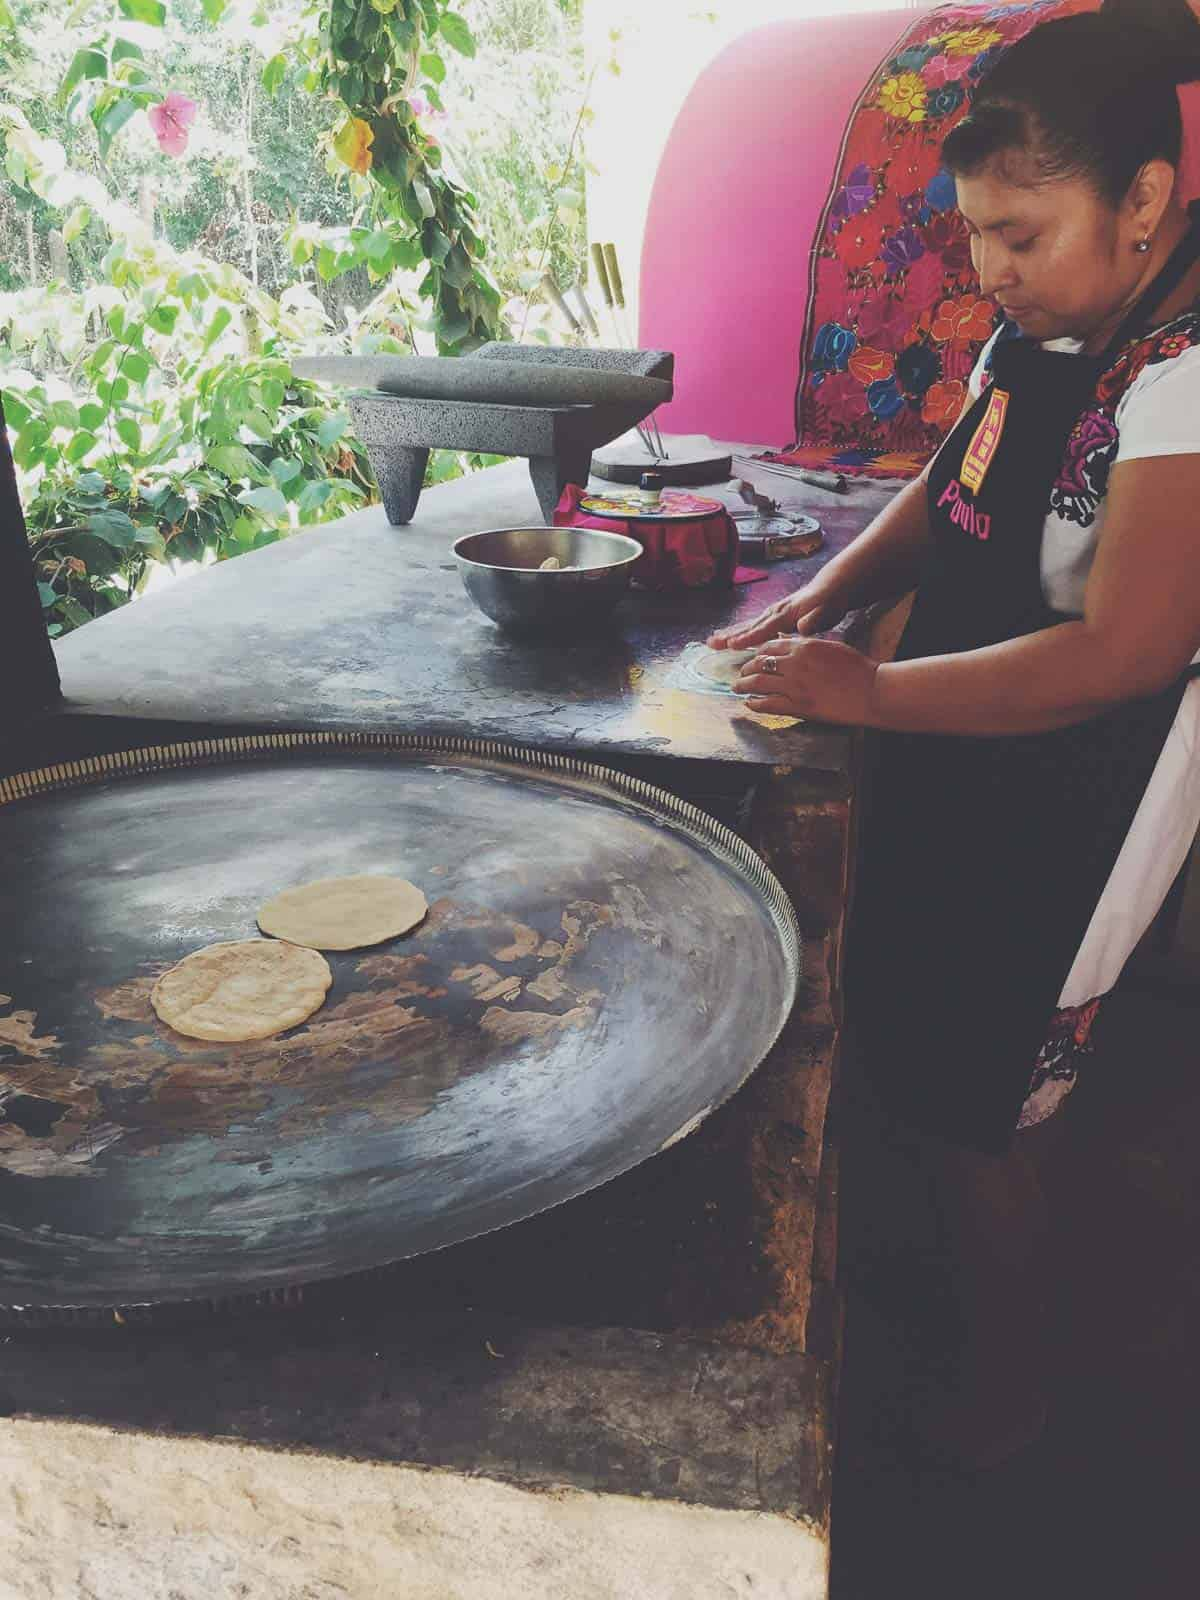 Mexico Lindo Cooking School - tortilla making